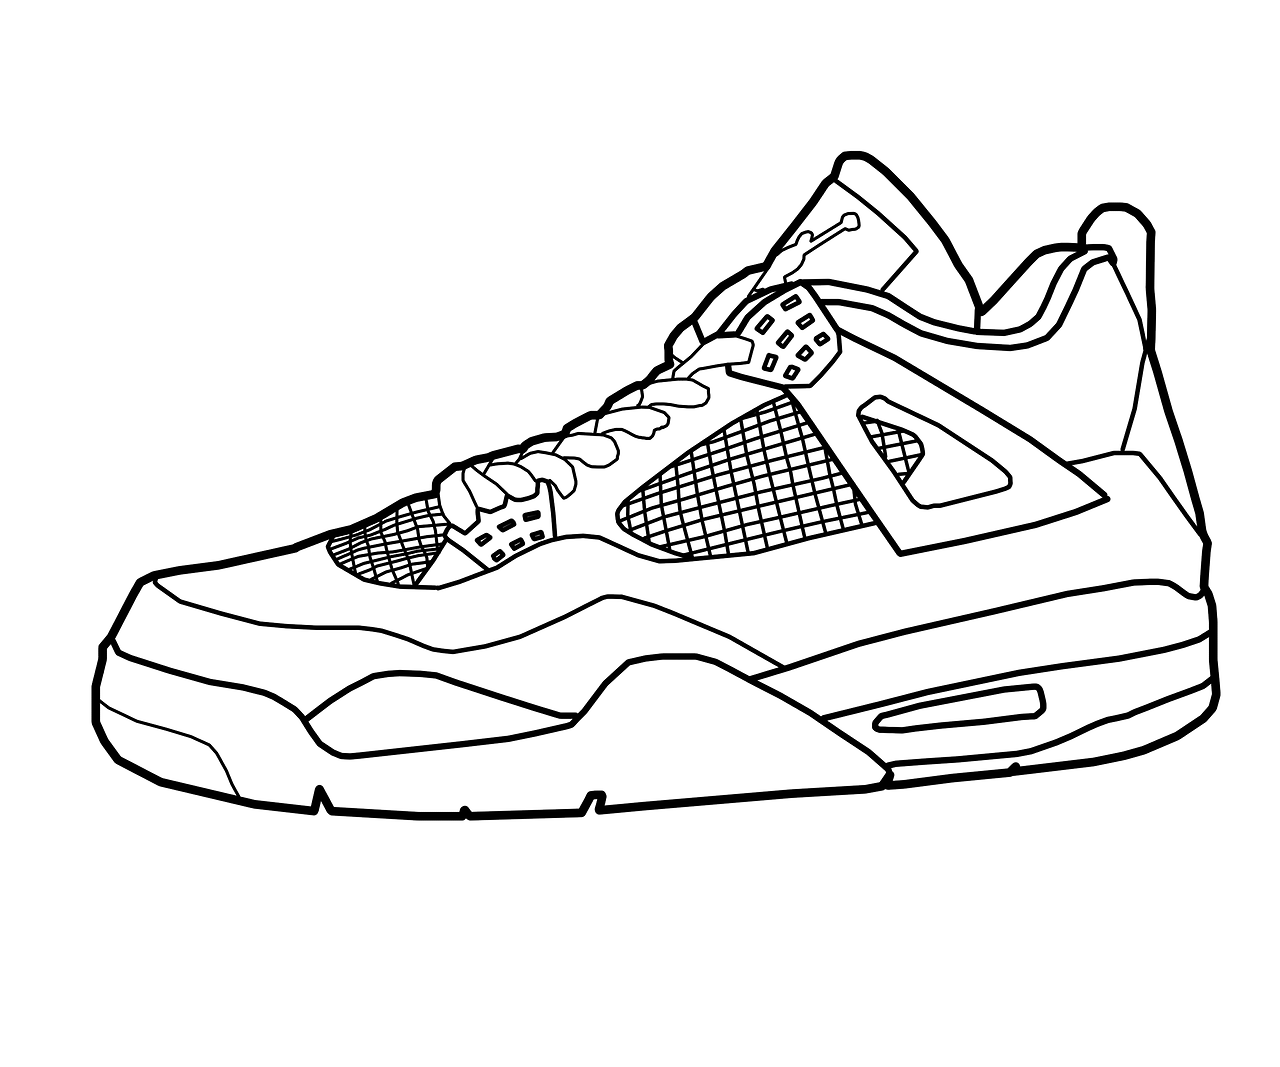 Drawing Jordans Shoes Coloring Pages, Use These Free ...